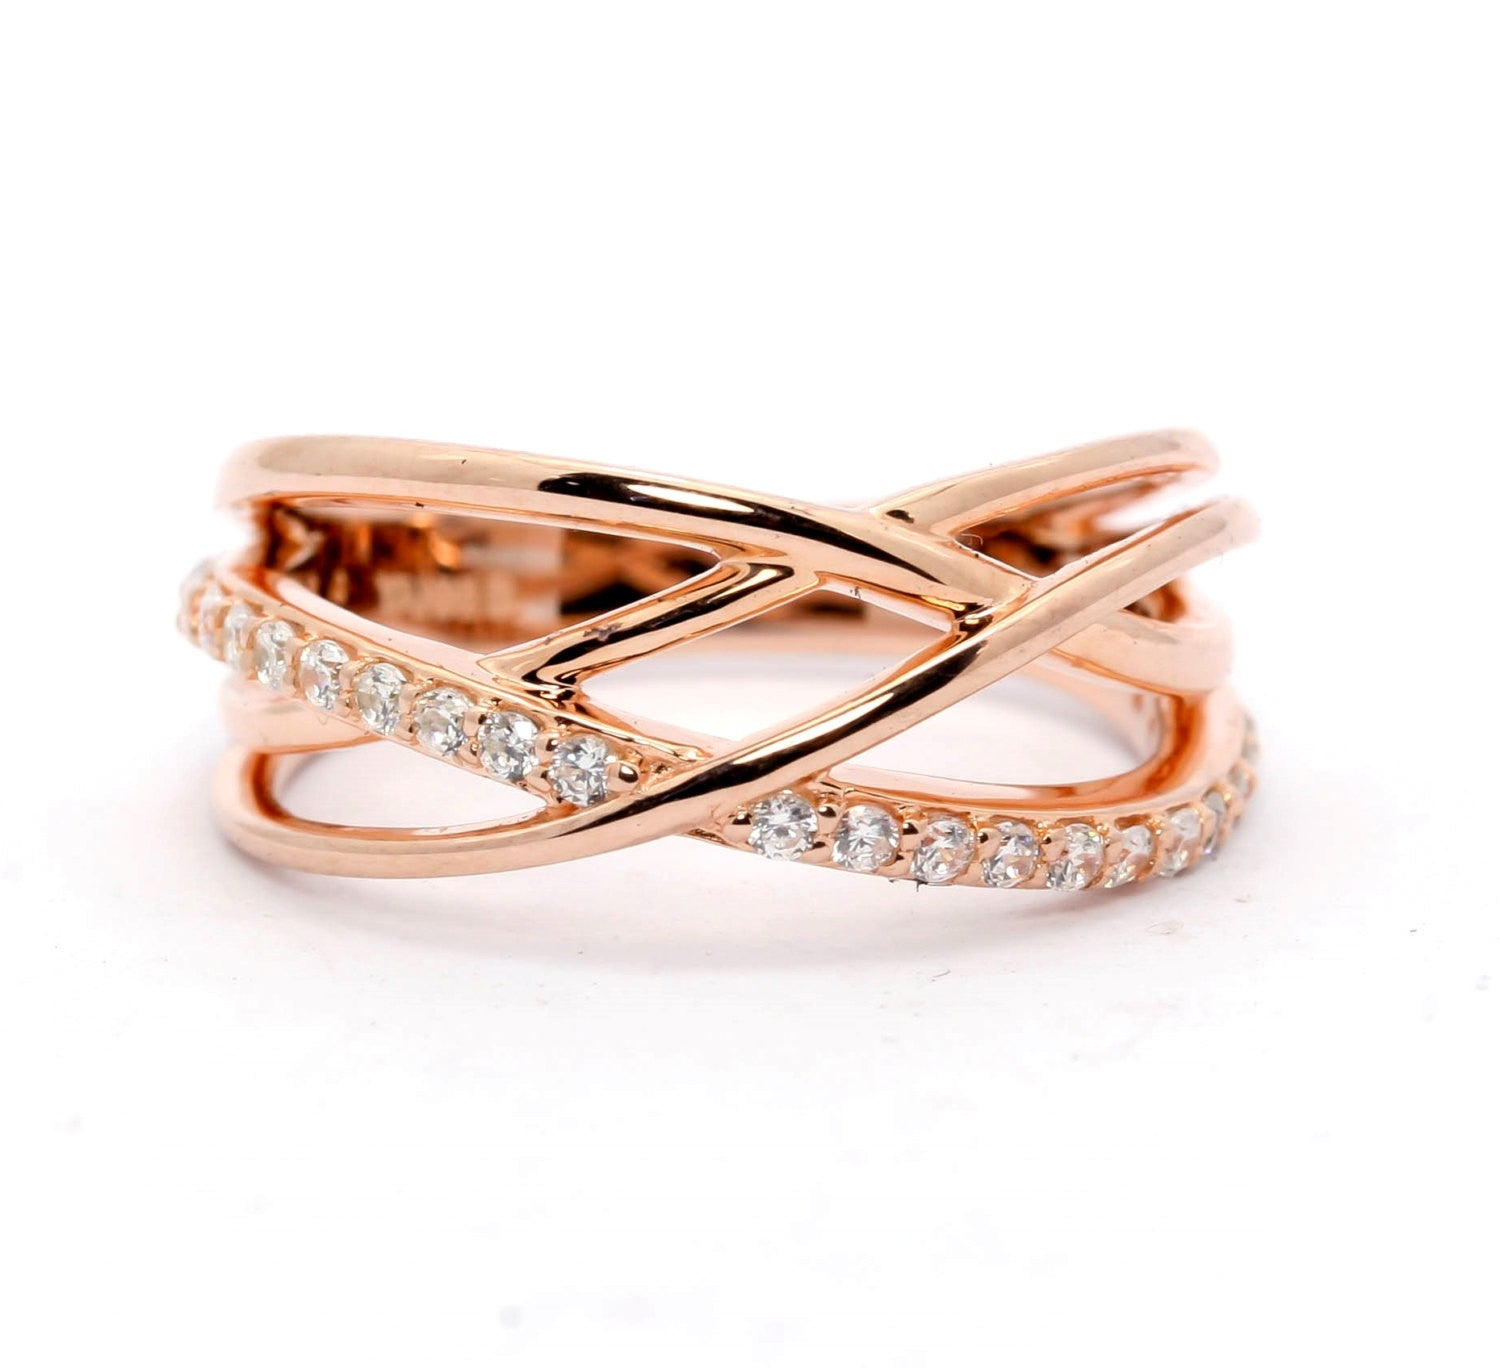 annivery deco rings eternity anniversary gold wedding half for ring antique band art rose bands milgrain diamond her